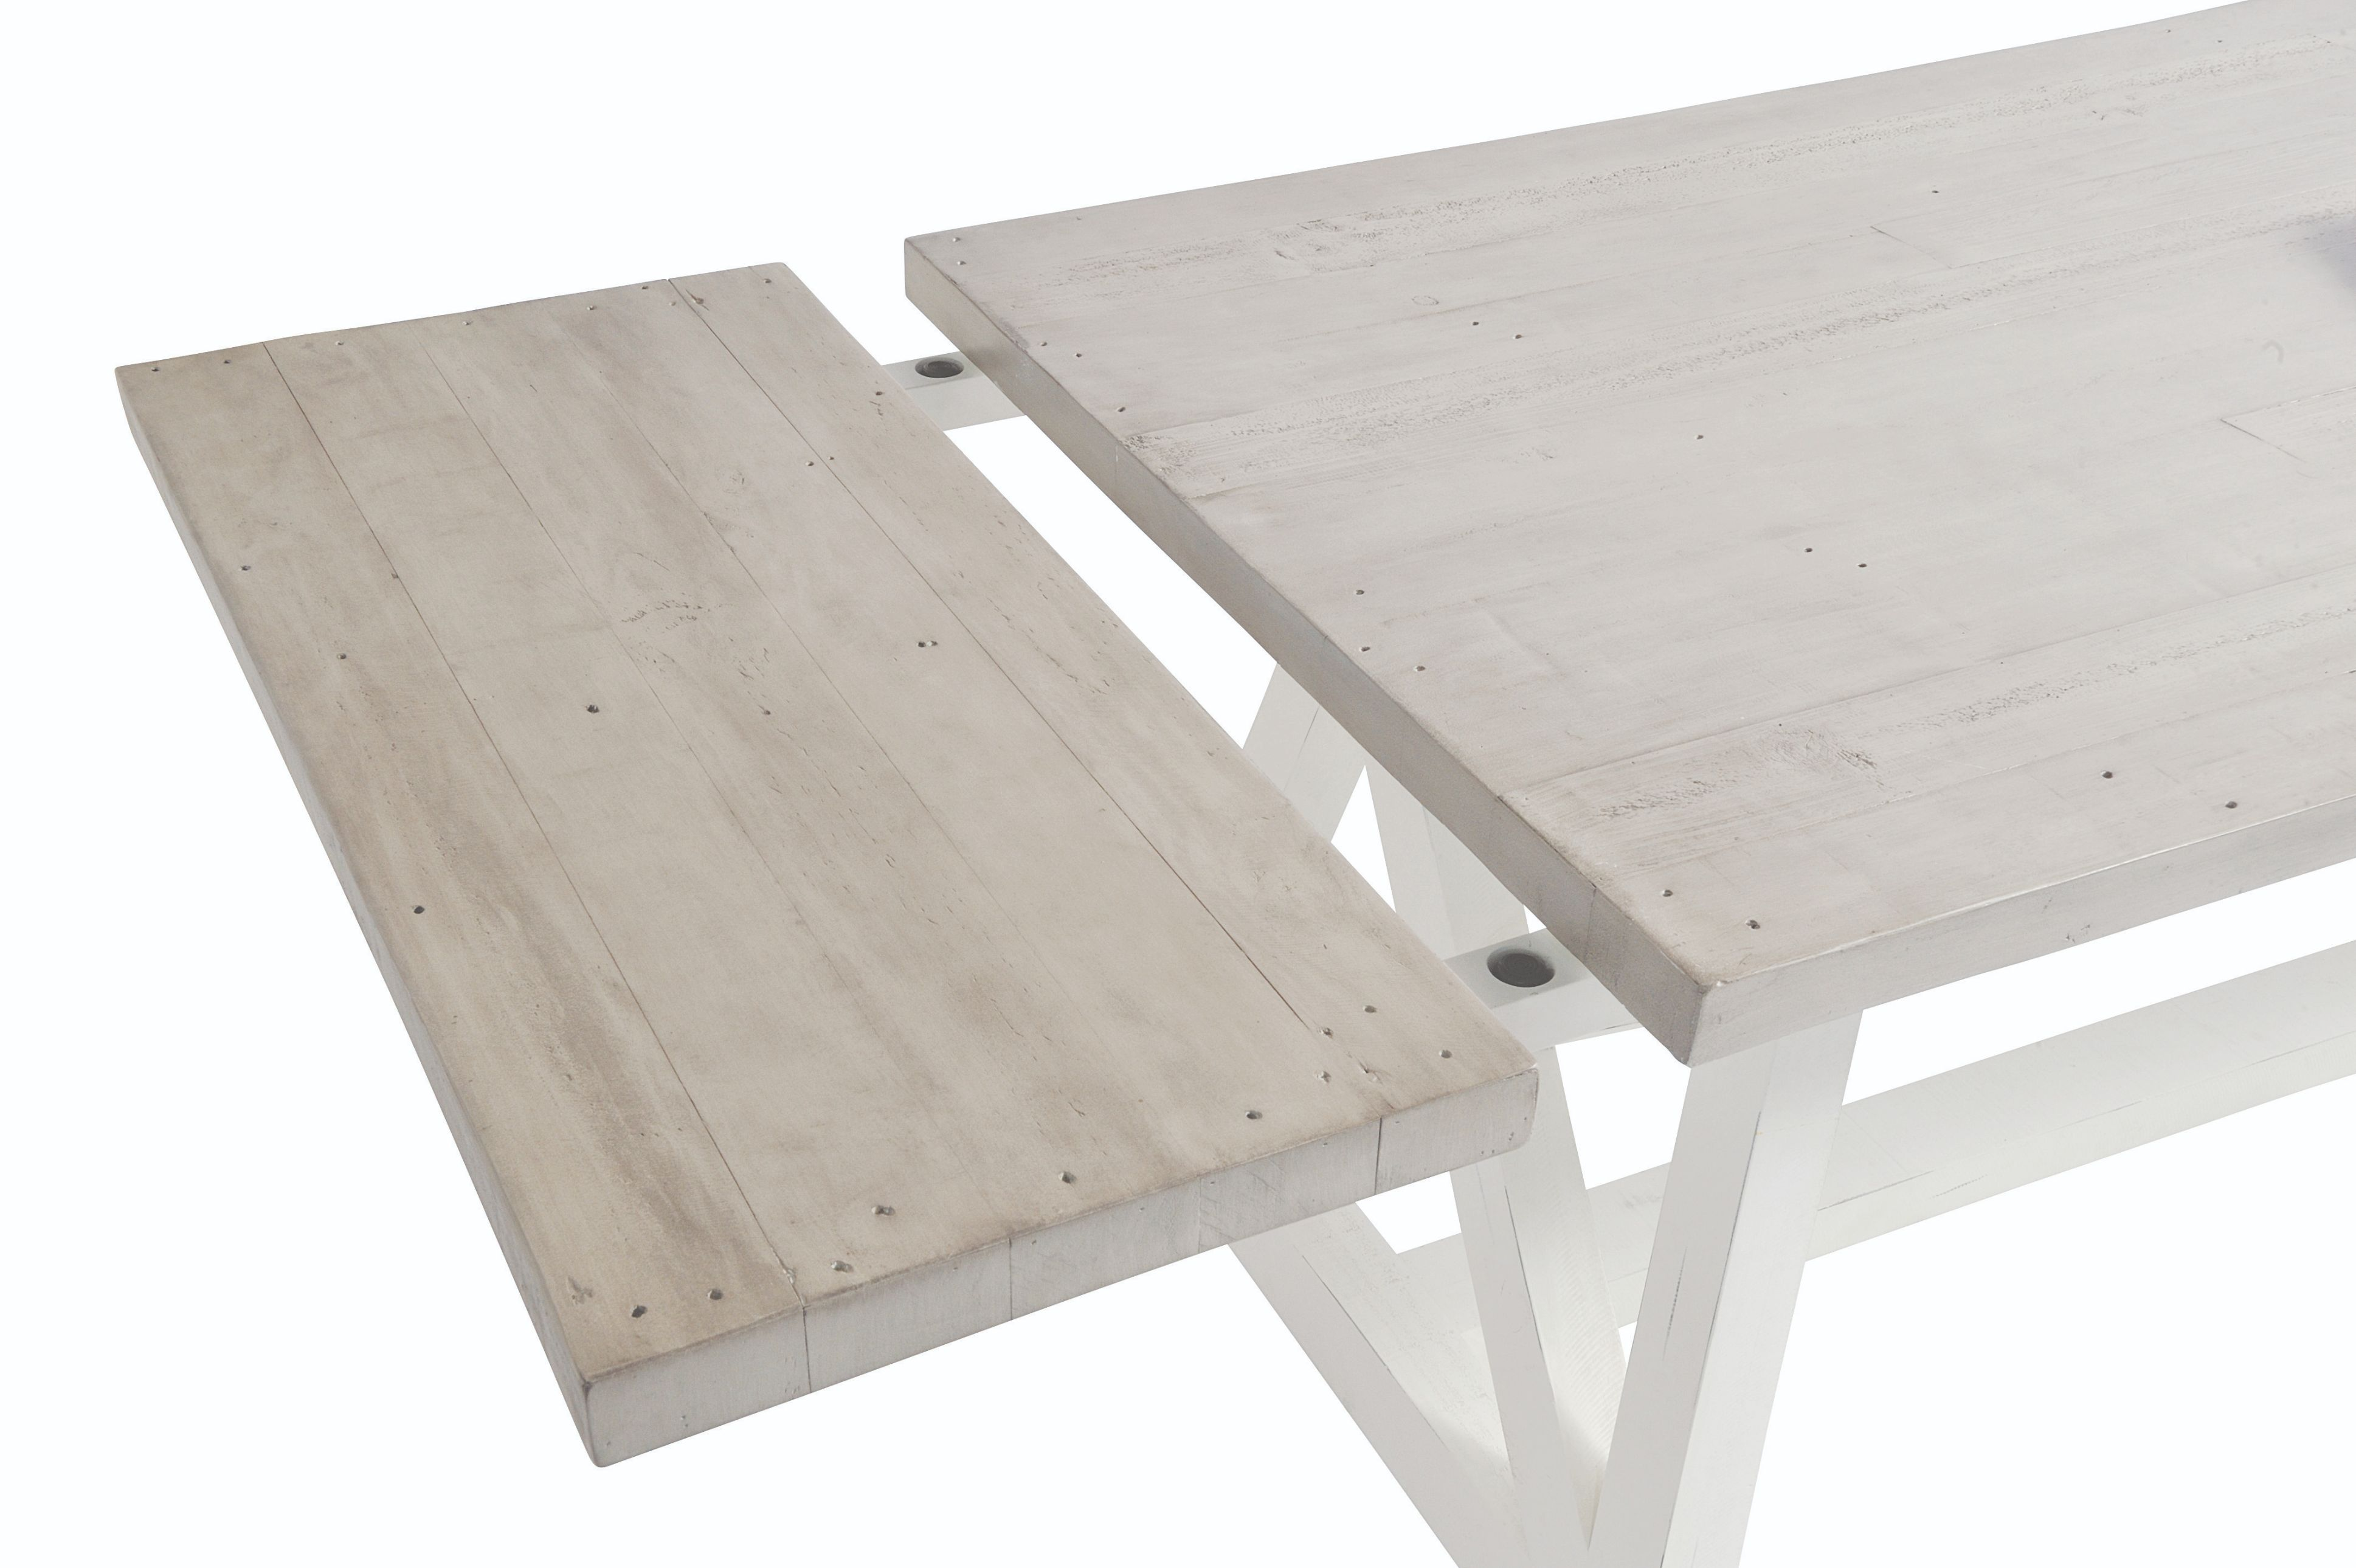 OXFORD Dining Table Extension Leaf